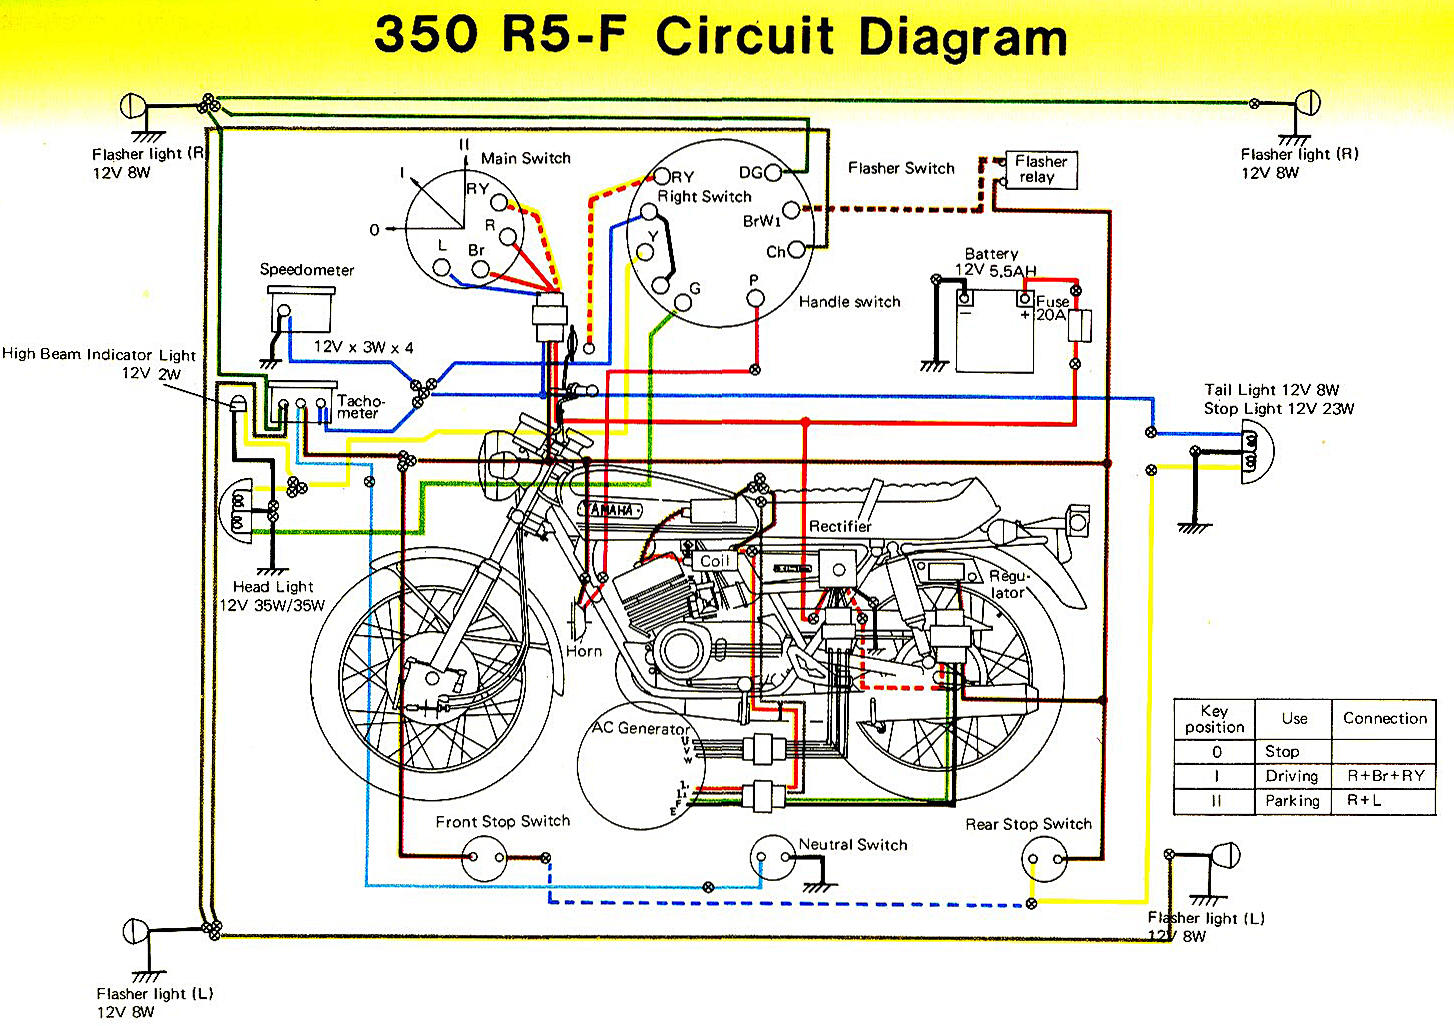 Audi A8 2 Door Wiring Diagrams furthermore Another Fuel Pump Due Replacement 2858909 as well G4 Crank Position G28 Engine Speed Sensor Info 2802889 additionally Golf 92 Wiring Diagrams Eng as well Oem 09 12 Nissan Gt R Xenon Headlight Wiring Harness W Bulb And Plugs. on audi 80 wiring diagram